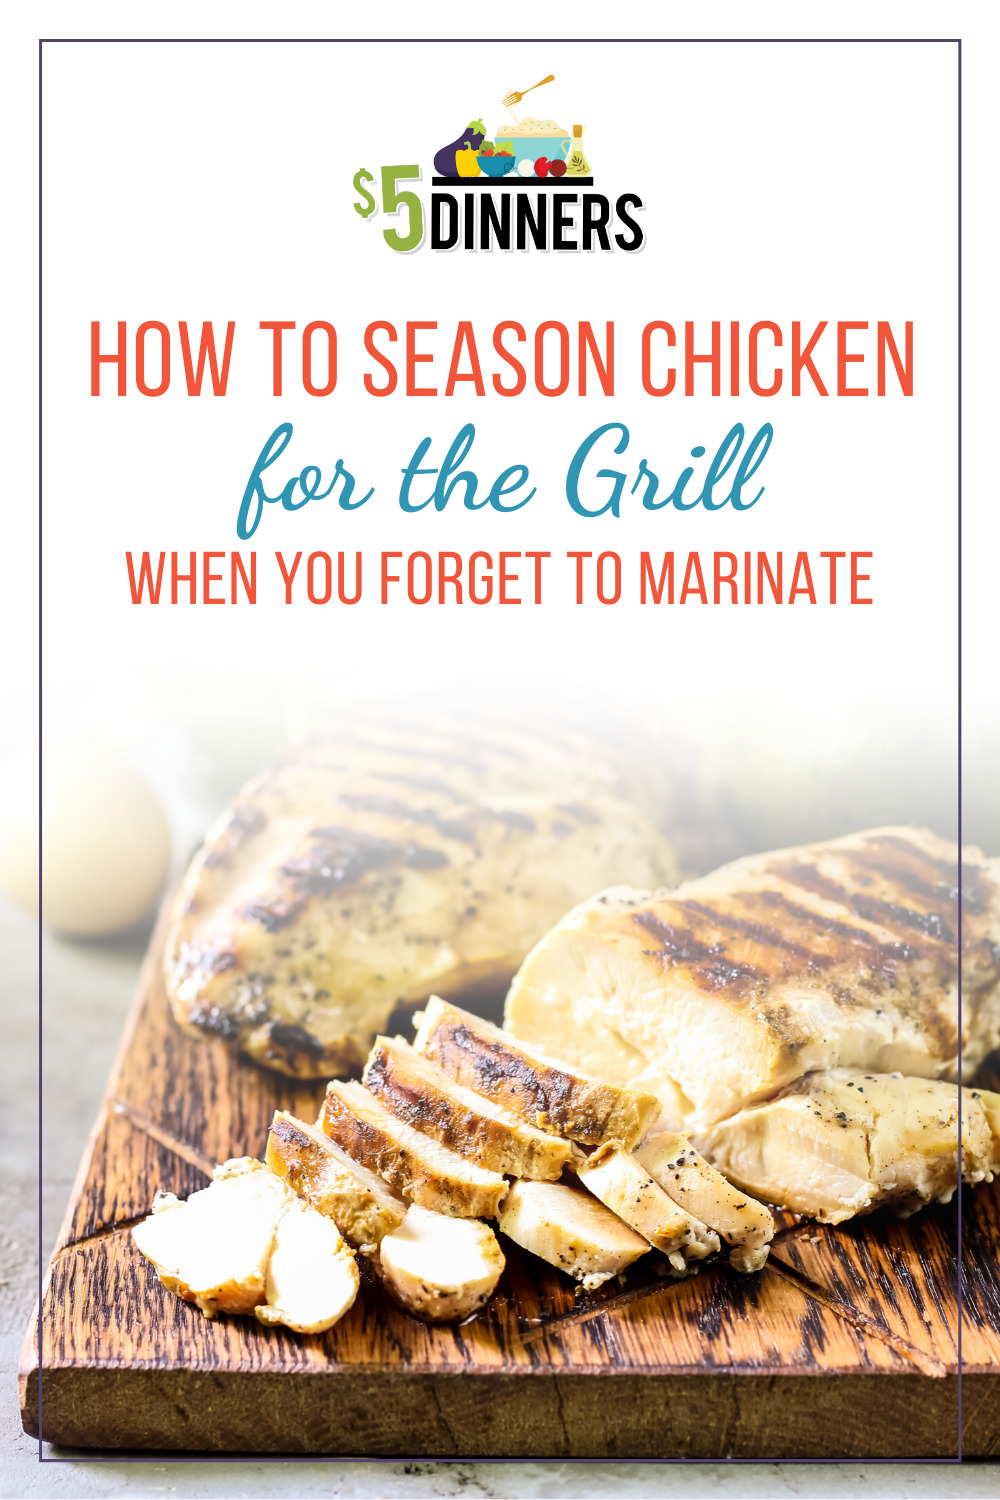 how to season chicken for the grill when you forget to marinate it